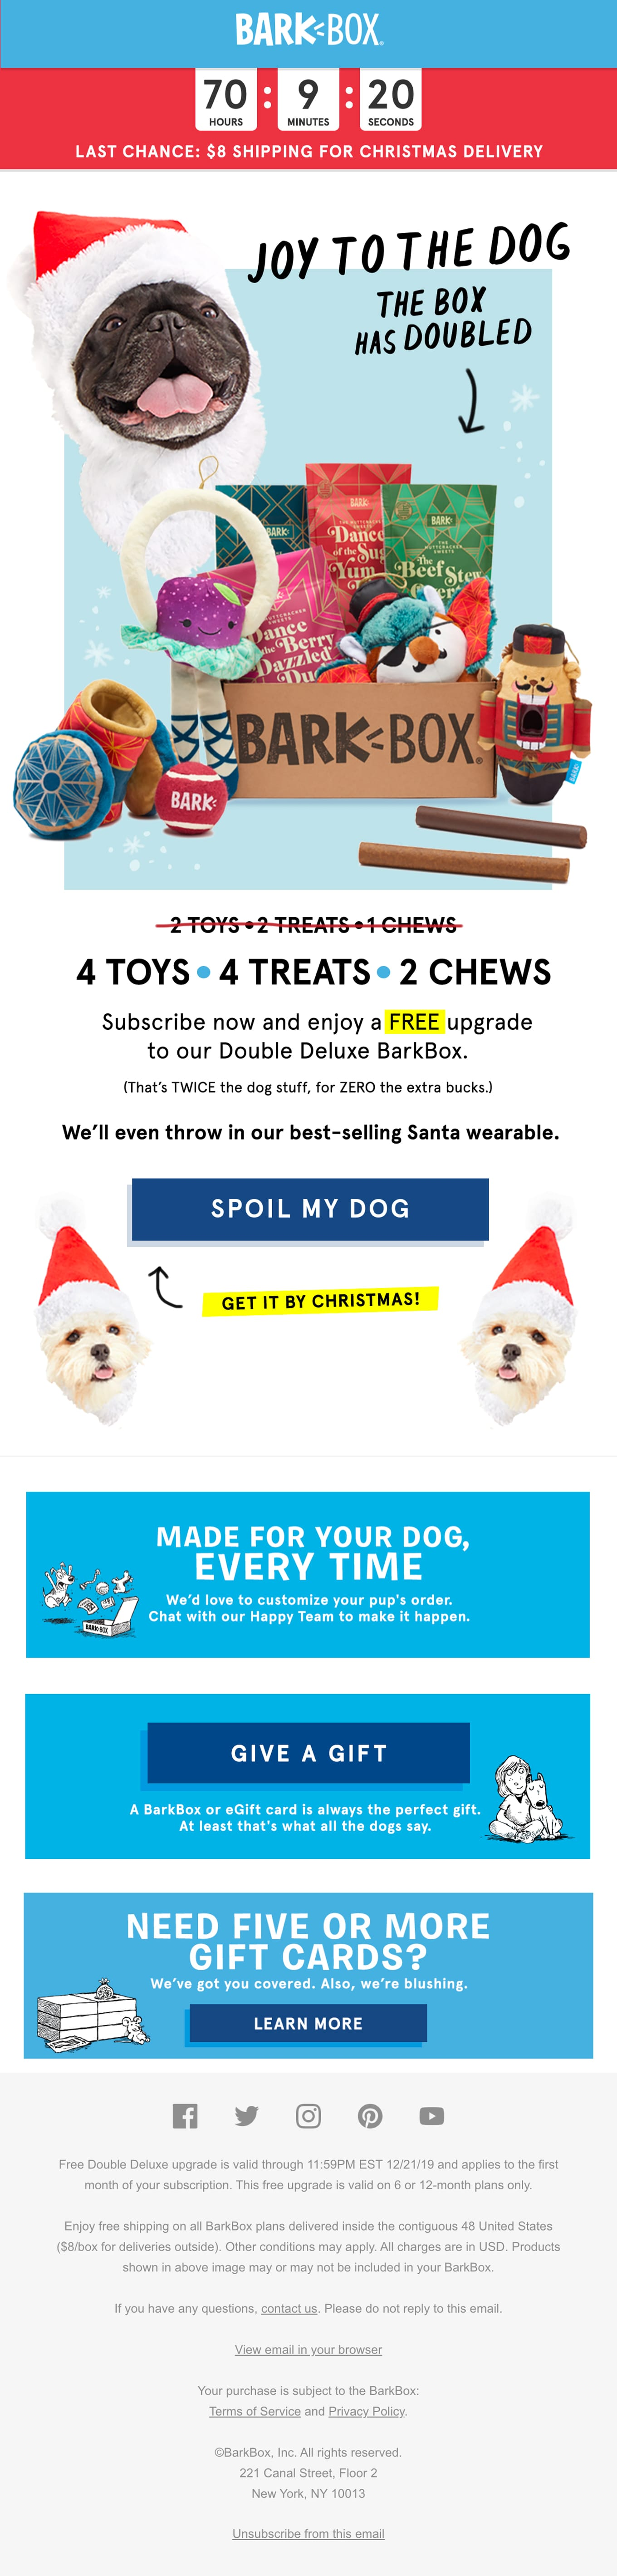 Last chance to get your dog's gift by Xmas Email Screenshot